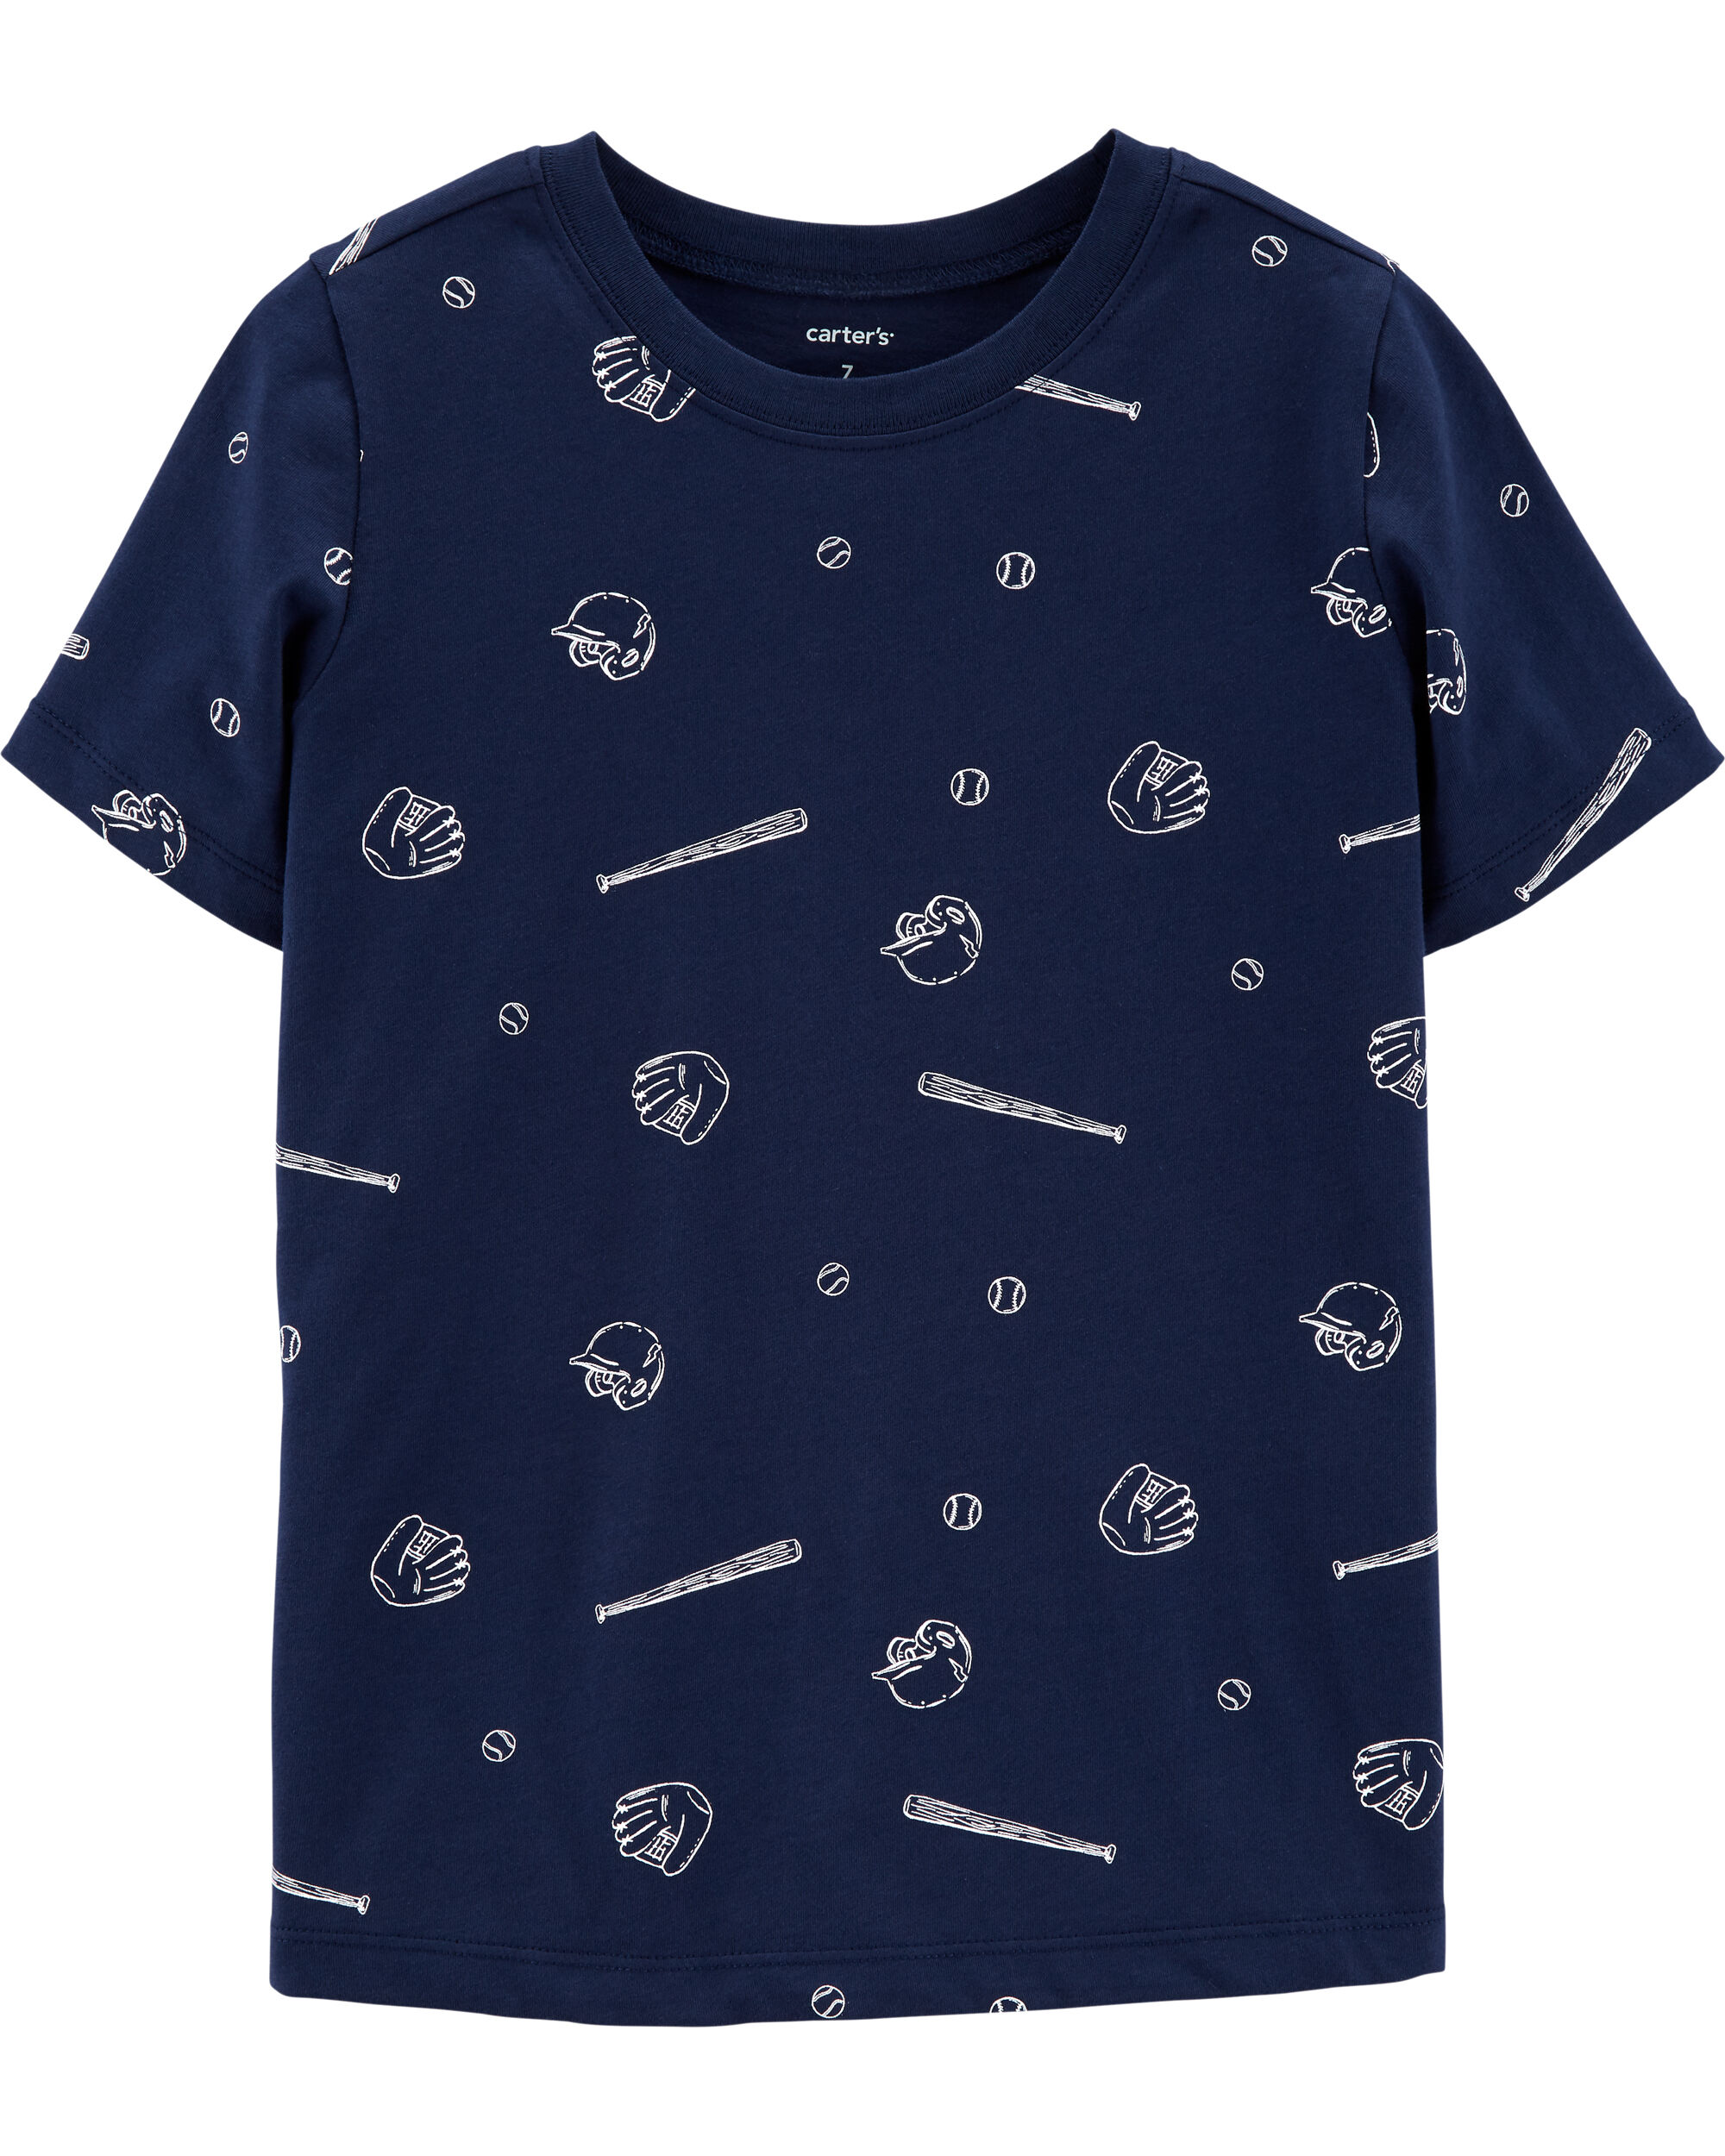 NWT Mini Shatsu Boy/'s Space Travel Super Cute Boys Summer Tee 6 Last 1